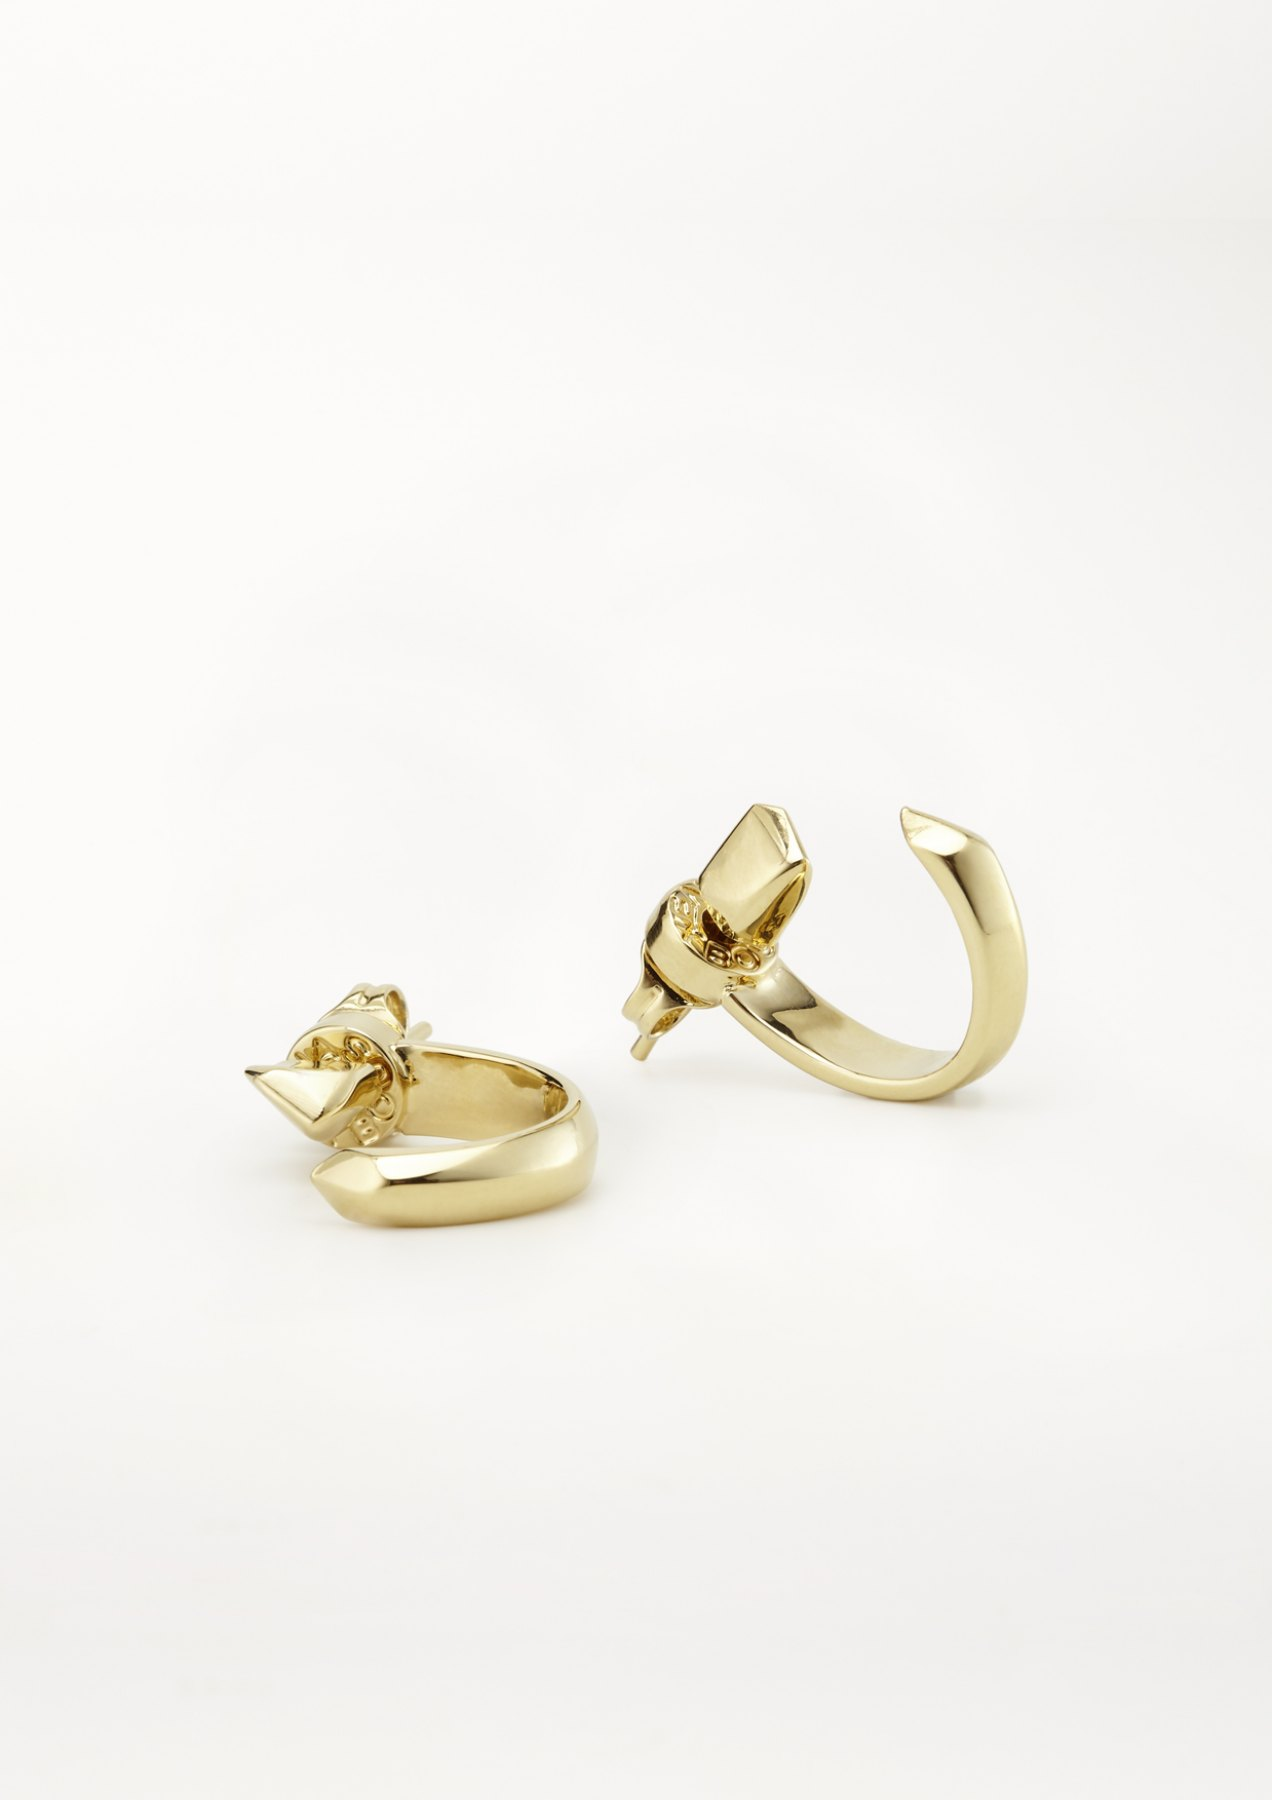 xenia bous jewellery washed stone 09 Tiny Hoops earrings gold silver